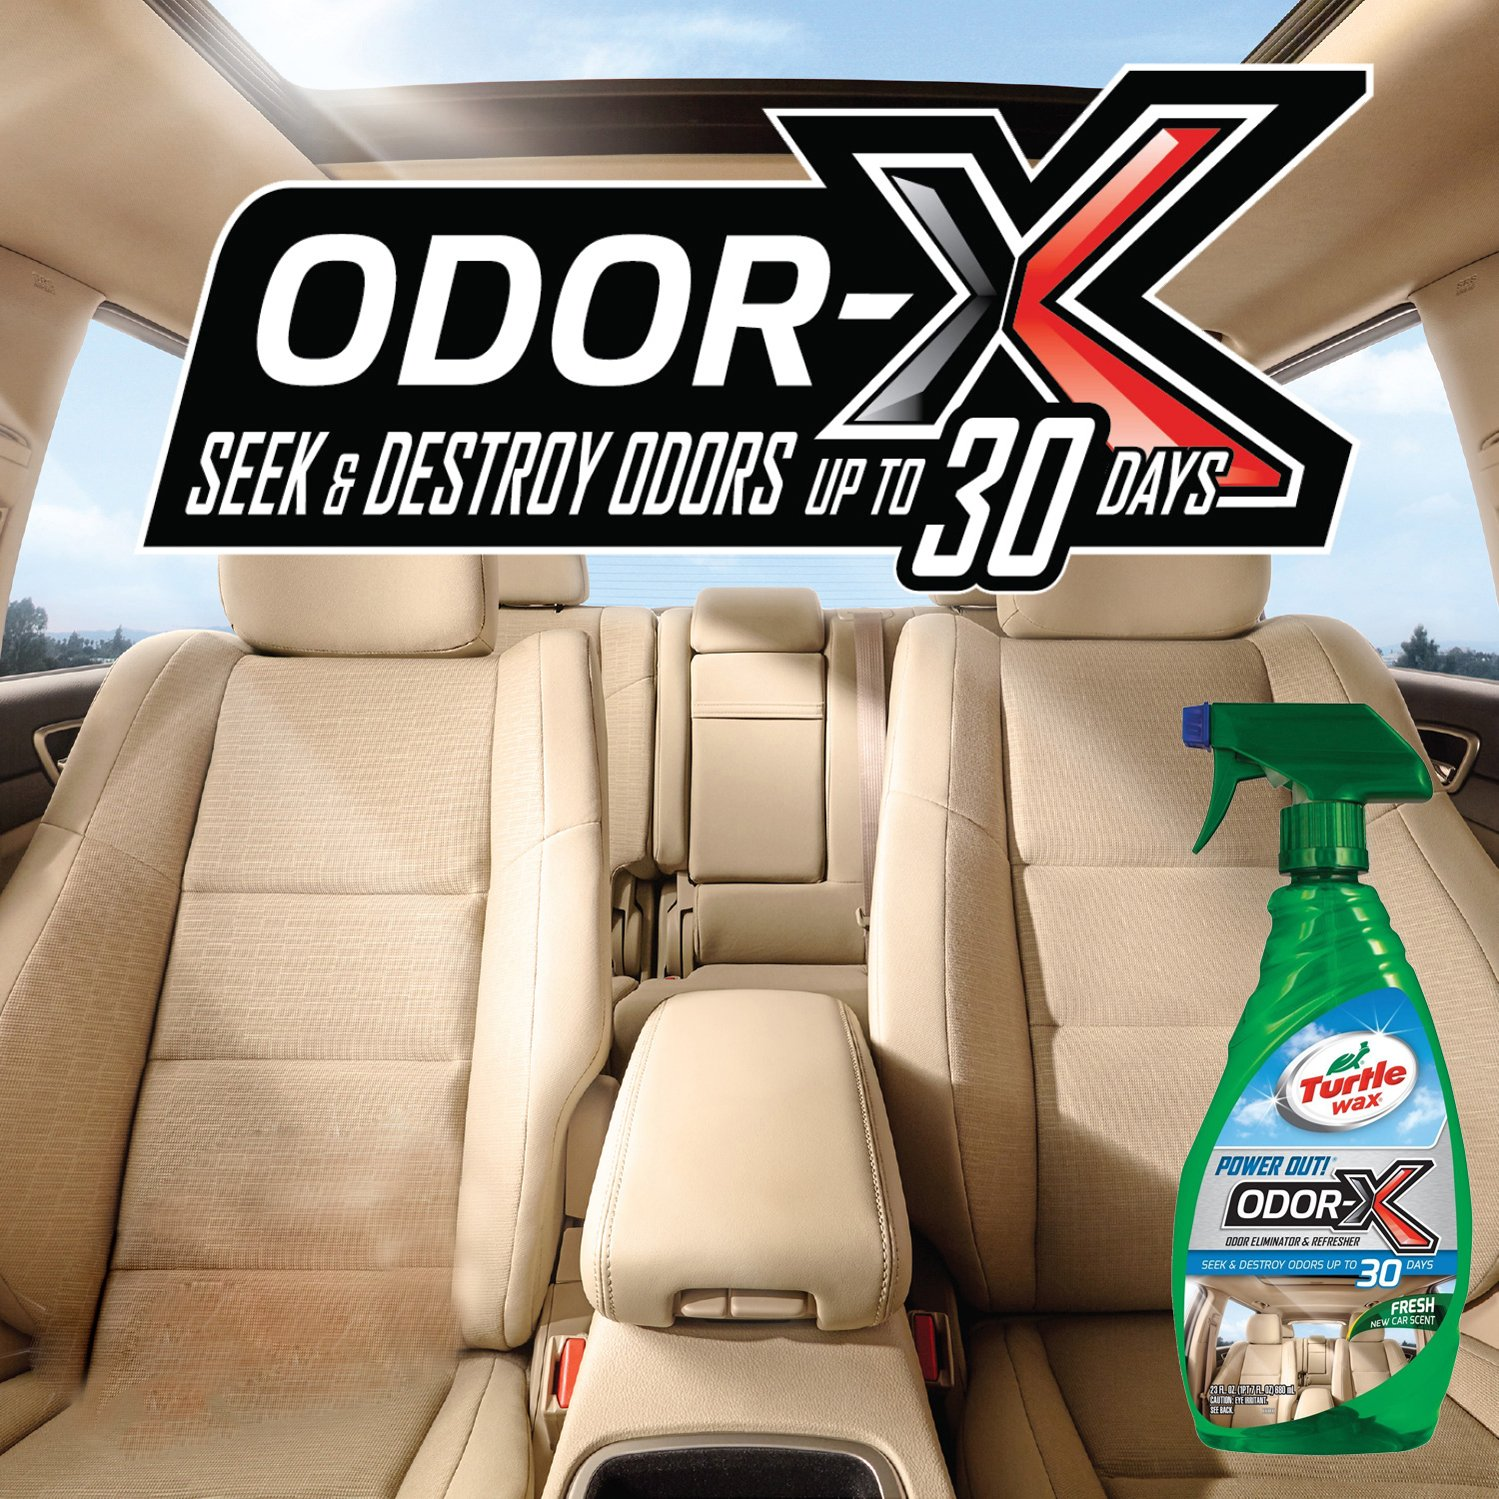 TURTLEWAX 50654 Power Out Odor Spray by Turtle Wax (Image #4)